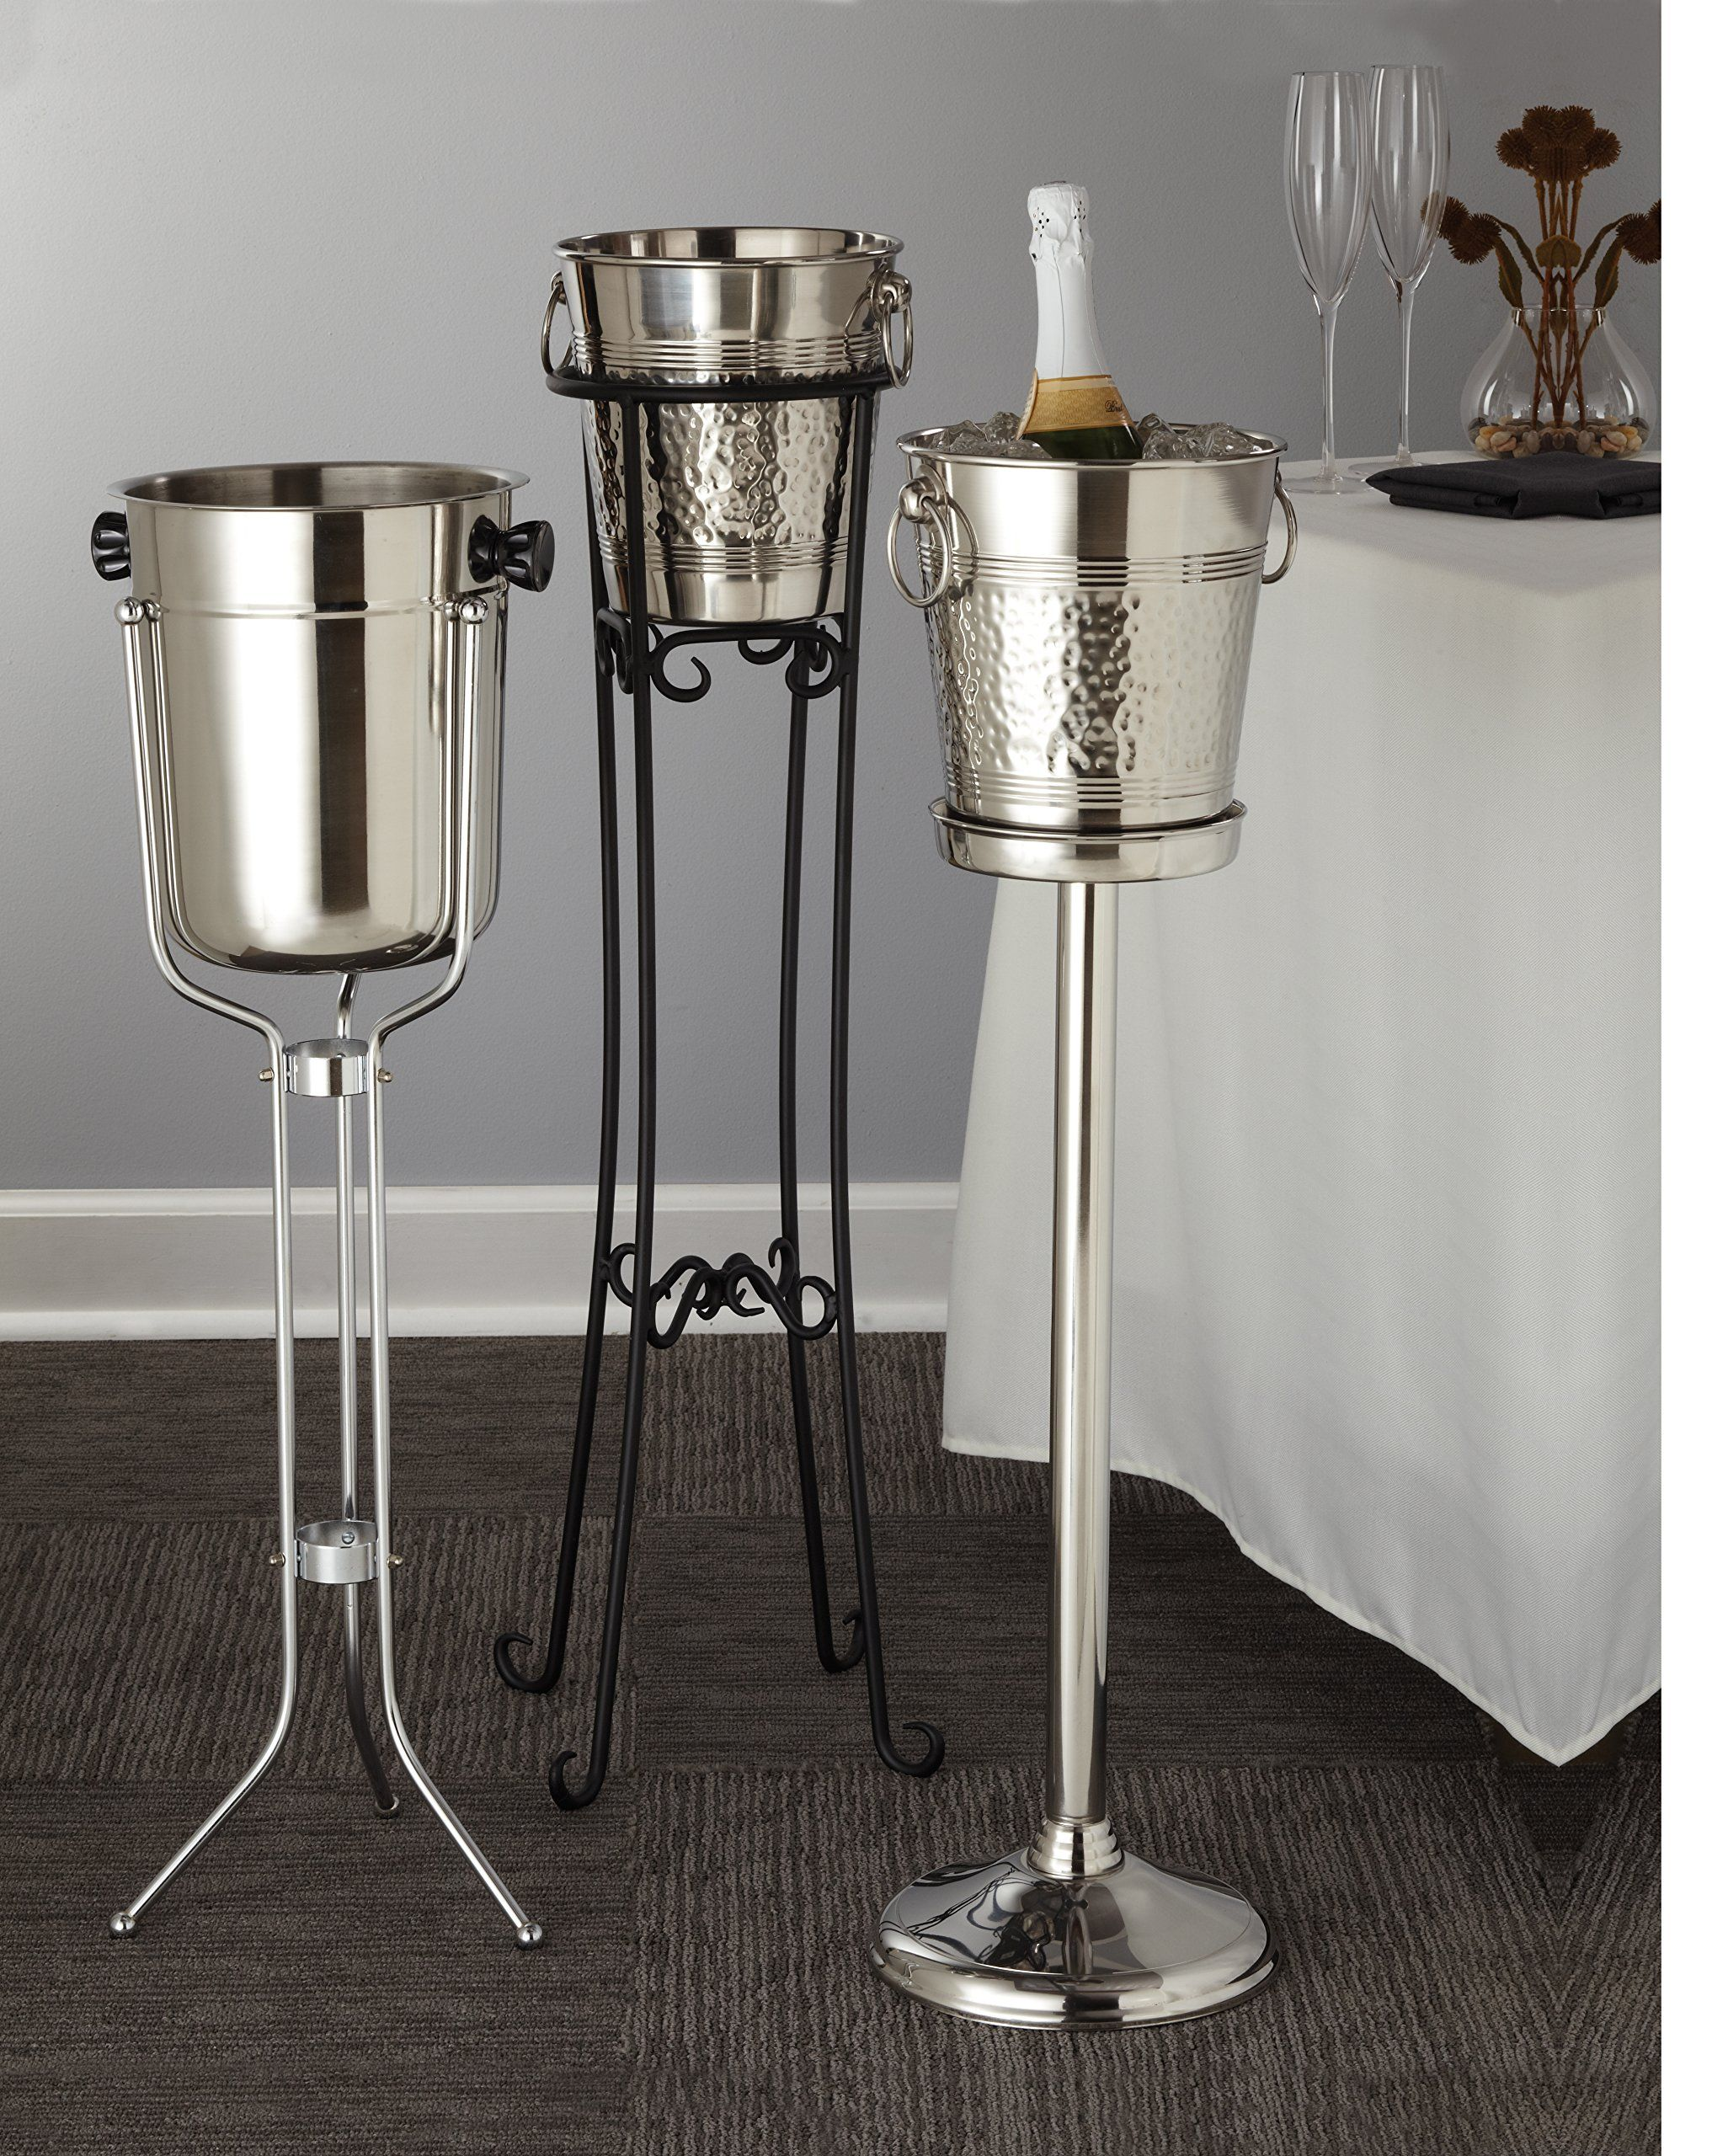 American Metalcraft Wbs24 Metal Wine Bucket Stand Mirror Finish Stainless Steel 24inches Read More A American Metalcraft Champagne Buckets Wine Bucket Stand